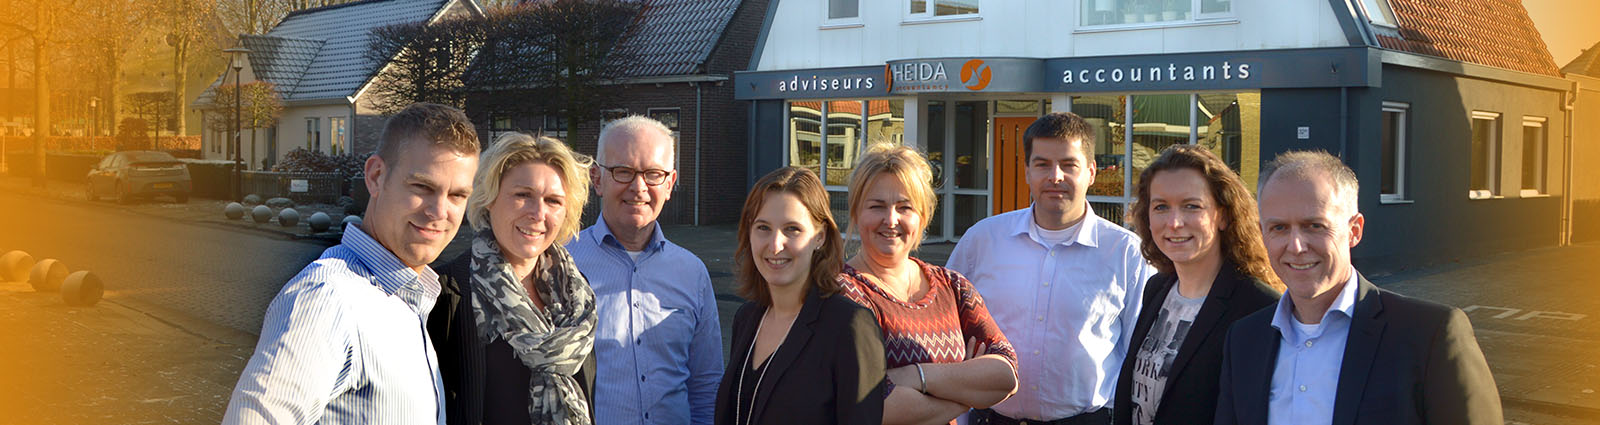 Personeel Heida Accountancy